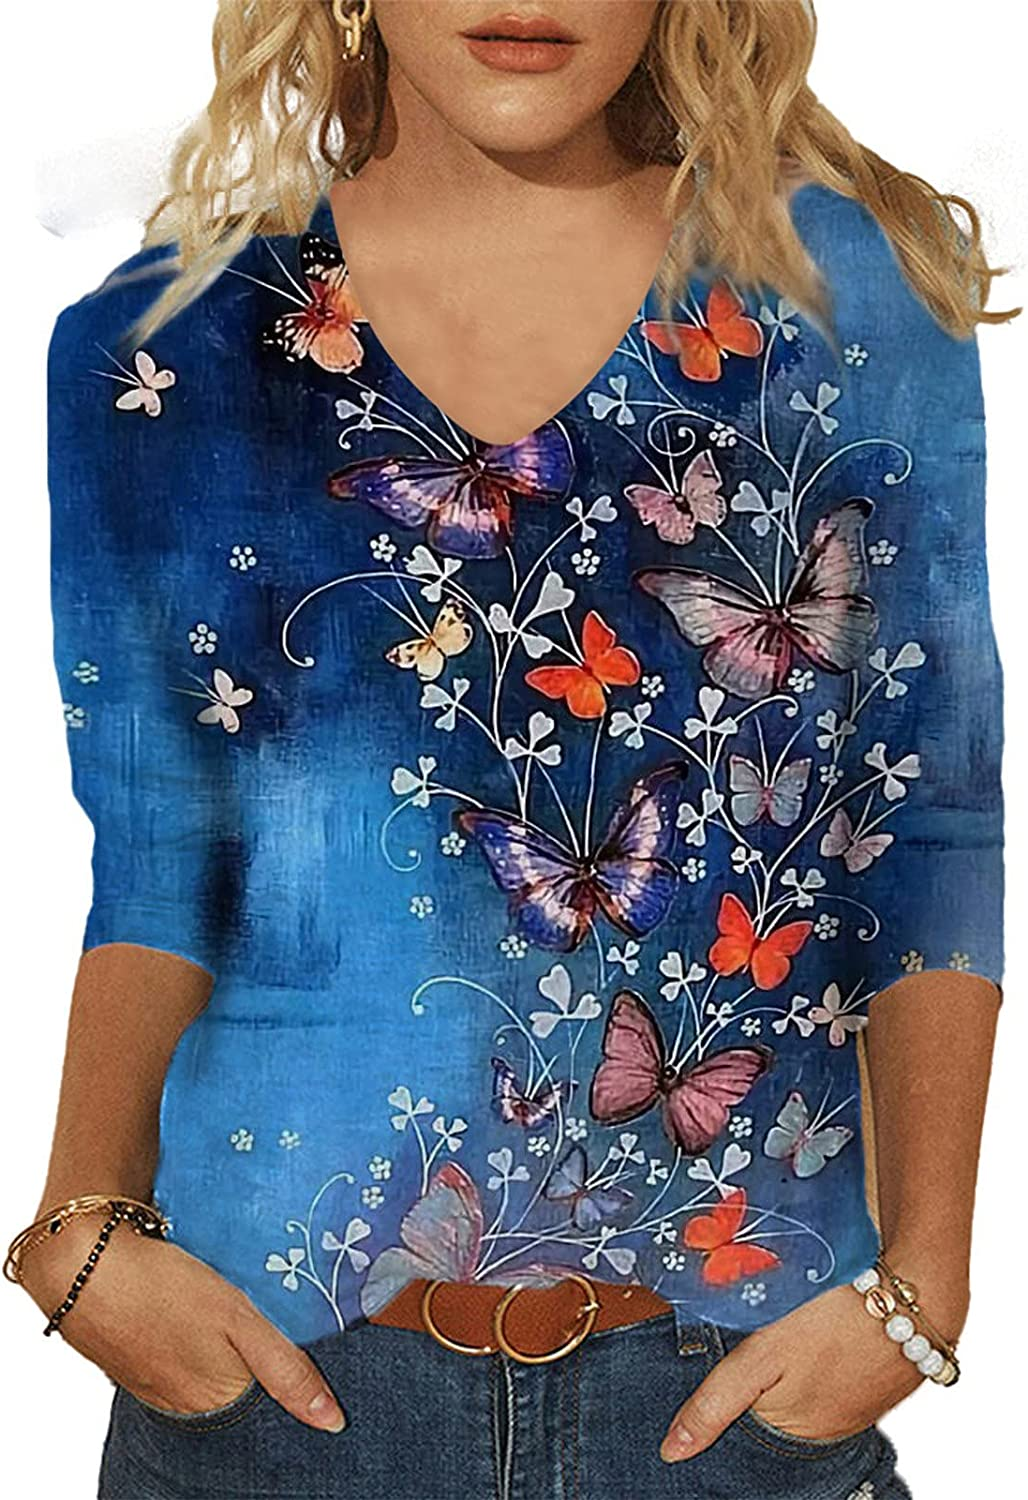 Women's Butterfly Printed Graphic Tee Loose 3/4 V-Neck Shirt Casual Relaxed-Fit Tops T-Shirt